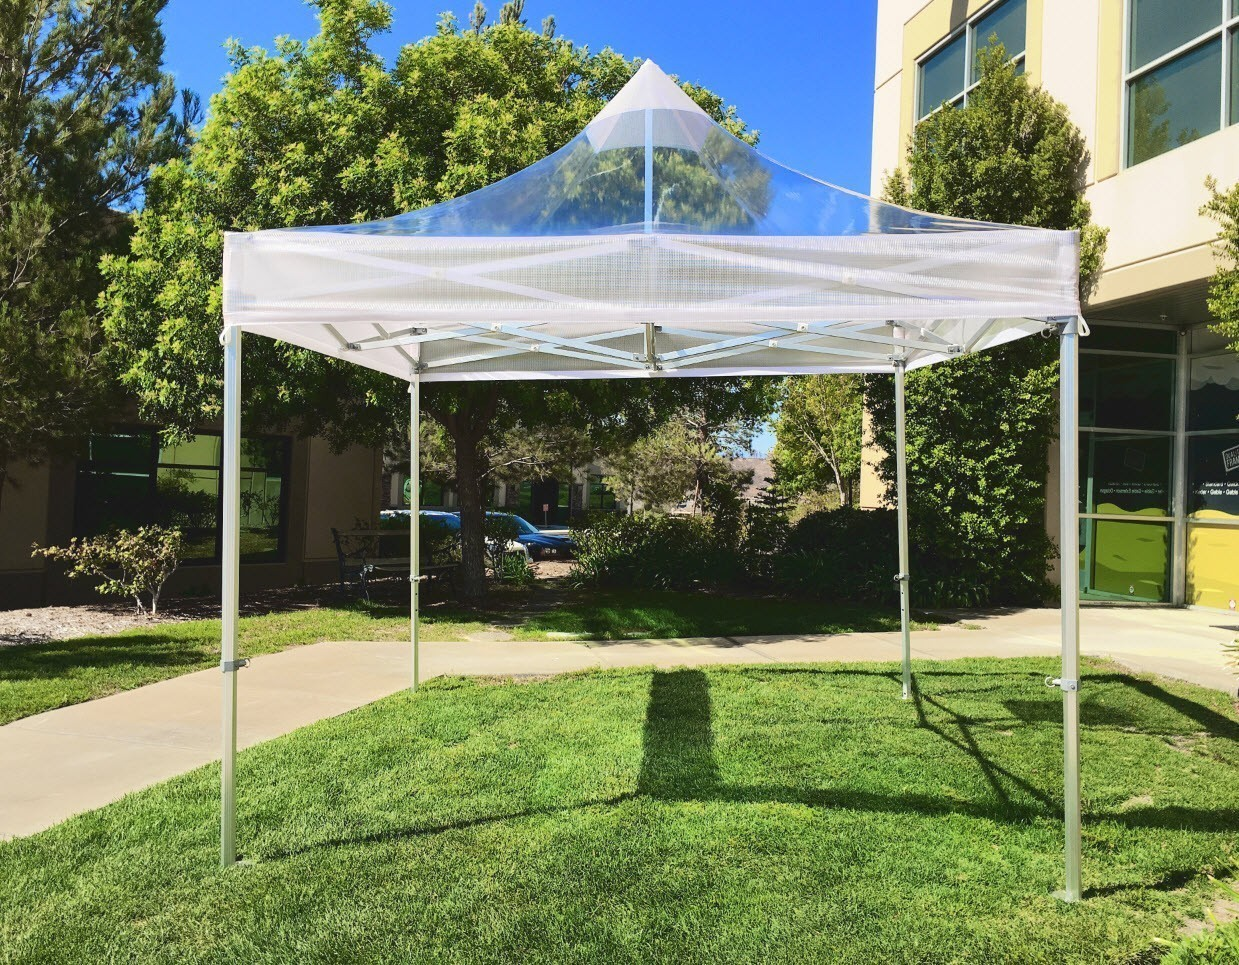 10x10 Commercial Clear Popup Tent Central Tent